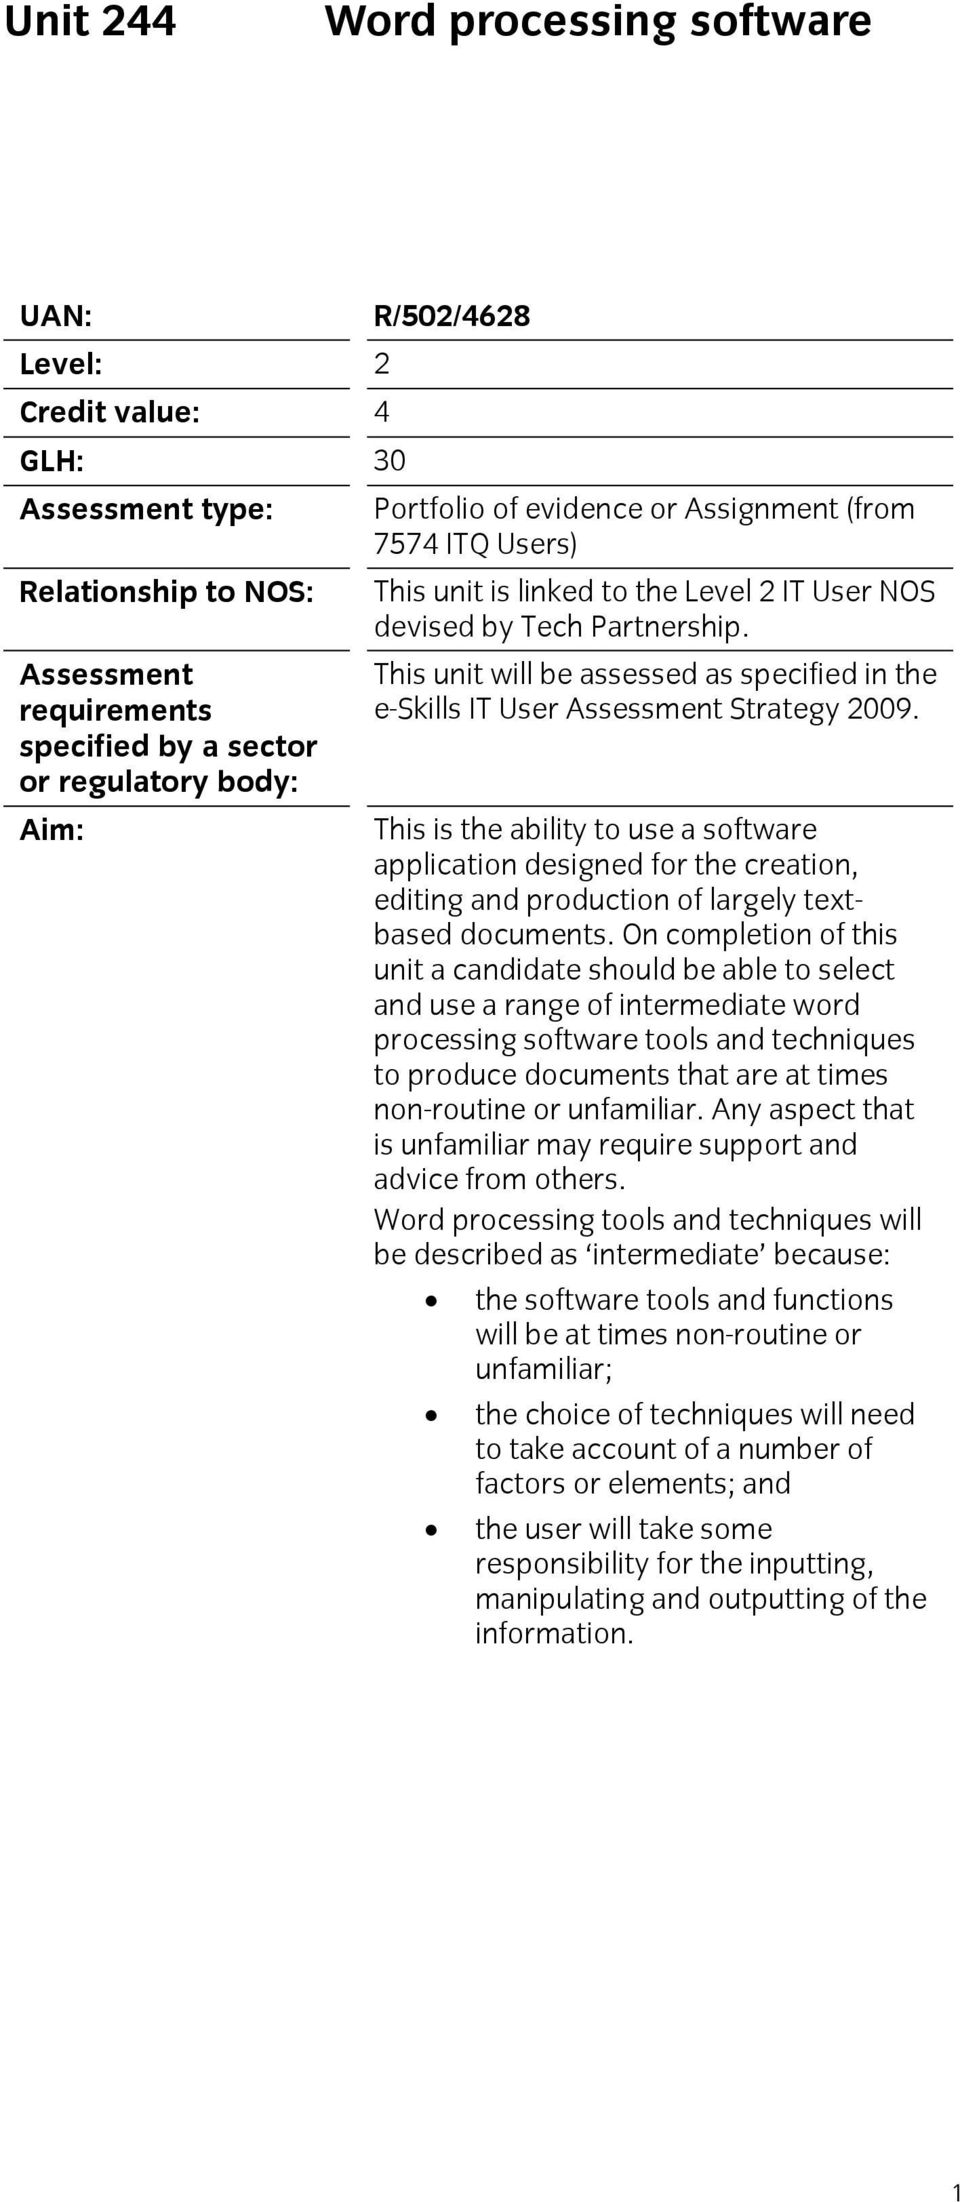 This unit will be assessed as specified in the e-skills IT User Assessment Strategy 2009.